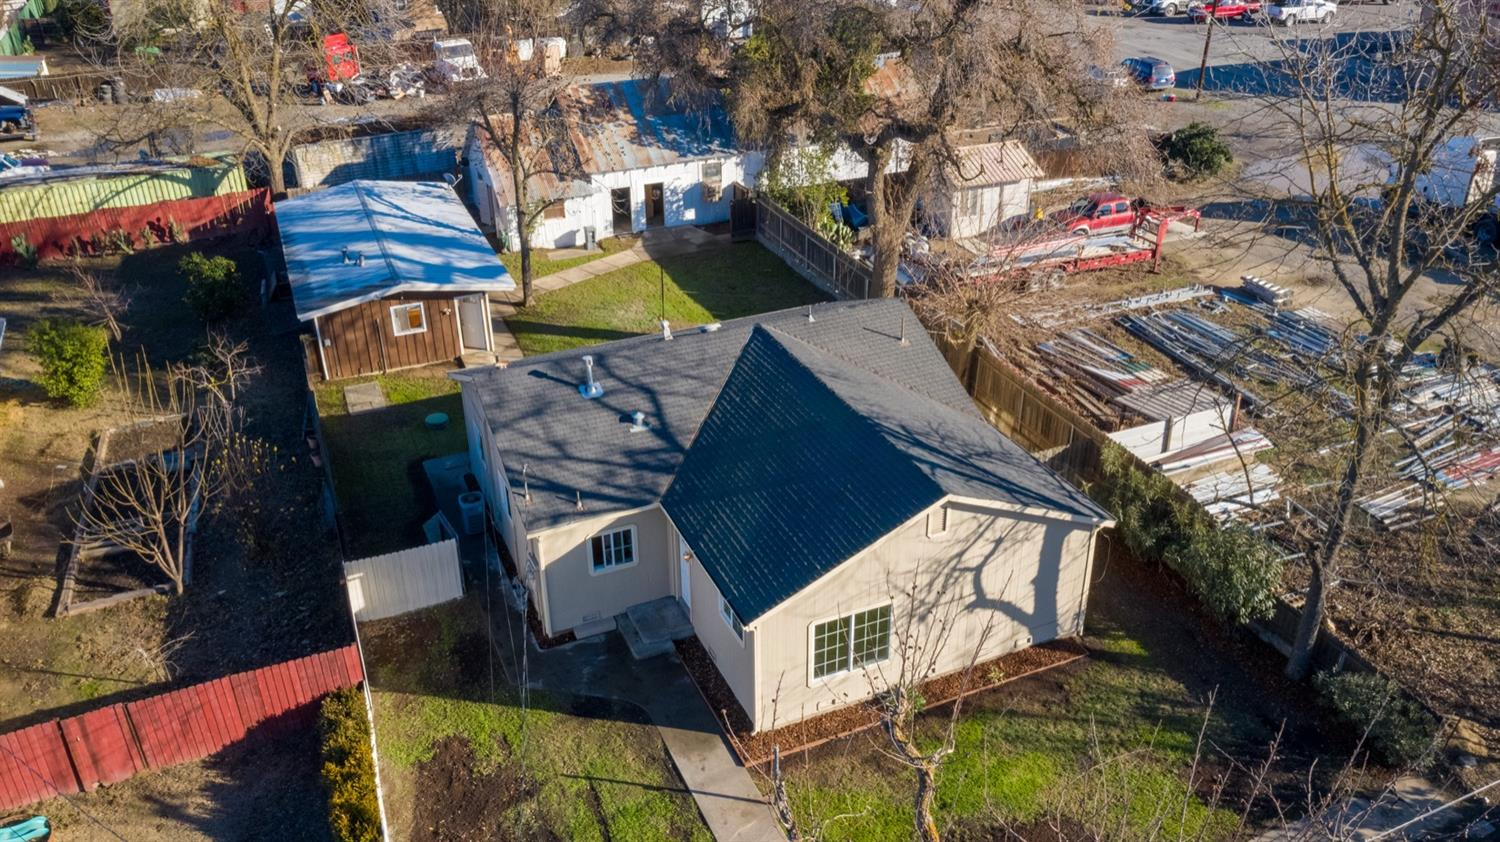 Investment/Rental or Multi-Generational Opportunity Awaits! Main Home with 3 Bed + Den / 2 Bath & Indoor Laundry. Guest House with 2 Bed / 1 Bath & oversized Metal Shop with 3 storage areas including 12' commercial overhead door & electrical throughout! Separate utility meters and entrances from Lurline or Palm. Fully fenced with tons of parking. Newer siding, windows, roof/gutters, irrigation, paint & carpet. Very well maintained and a must see! | gzE7ARR0rUU